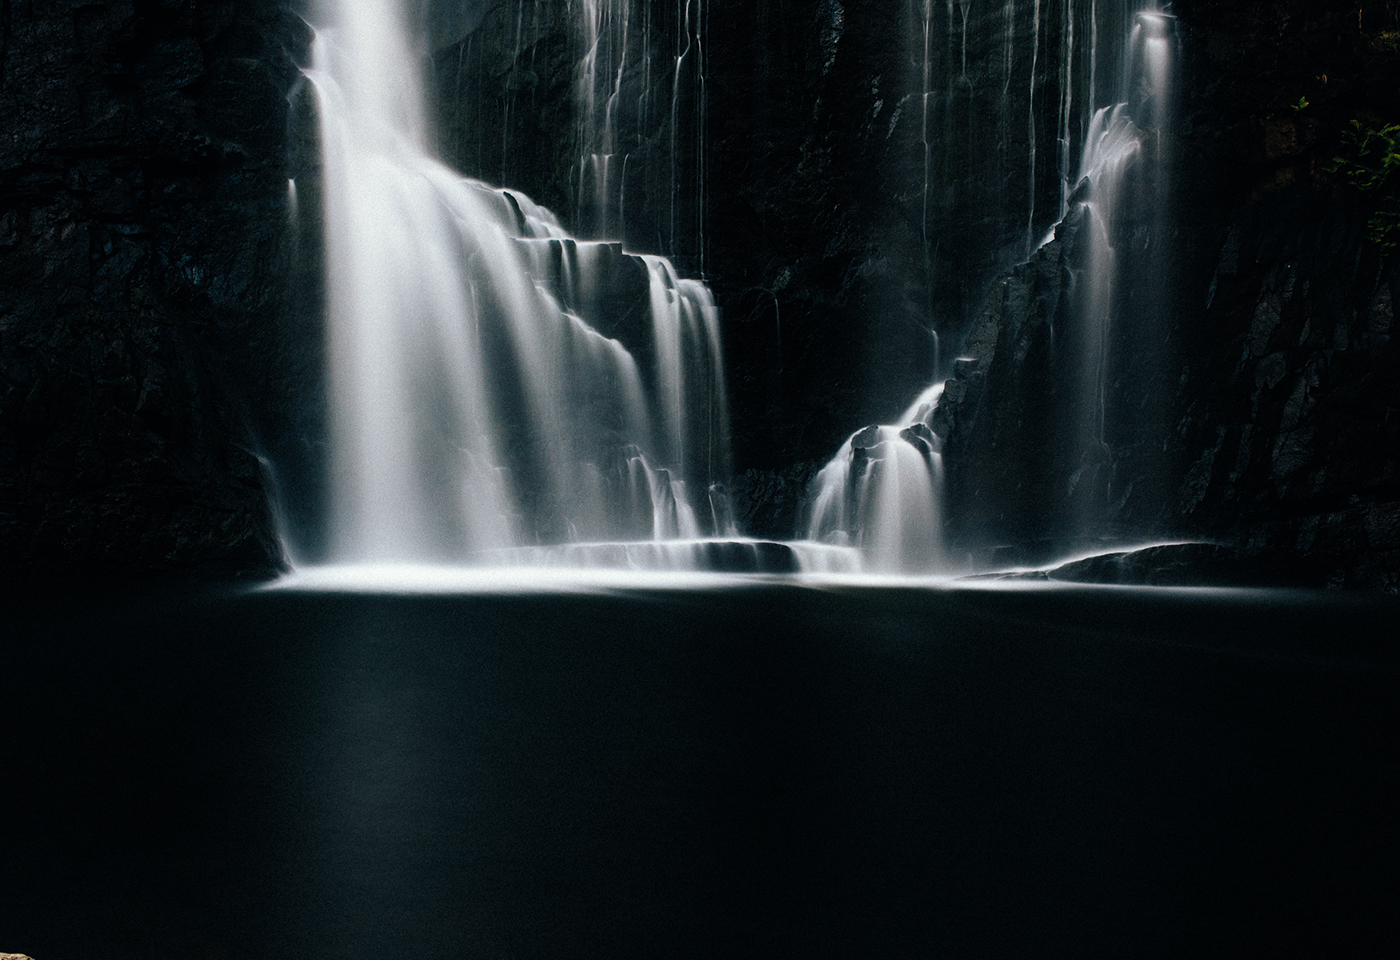 Long exposure image of Erskine Fall by Neal Walters